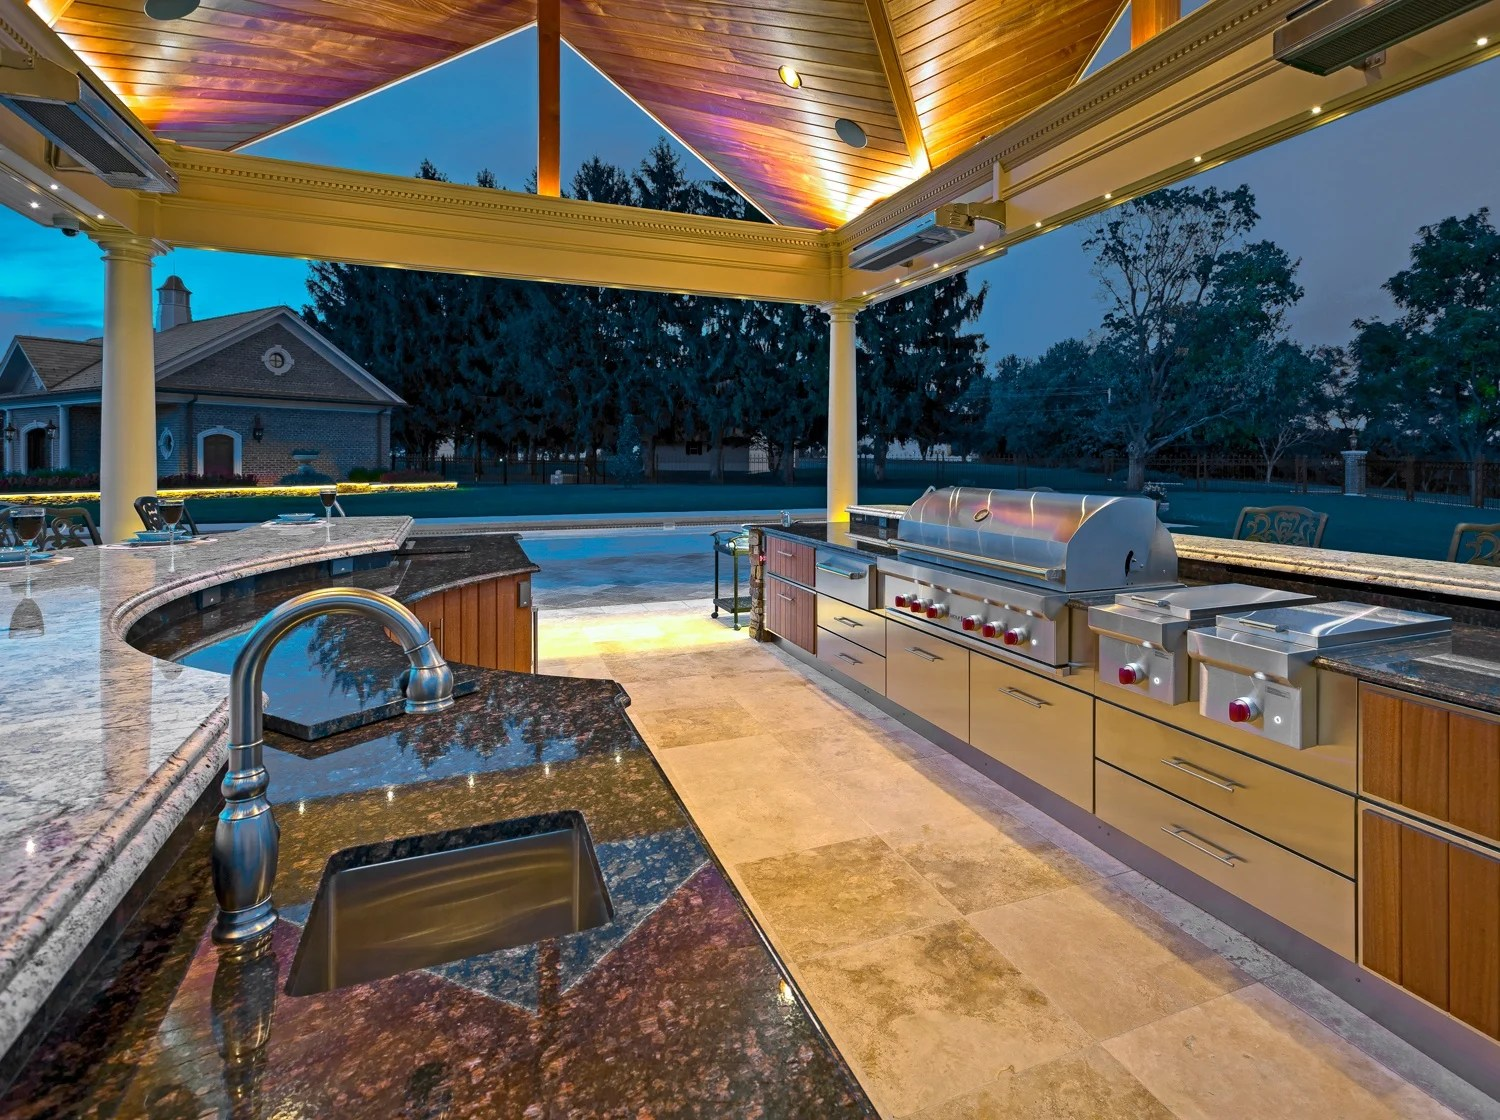 outdoor kitchen cost small islands with seating how much does an prices to expect in lancaster reading york hershey or